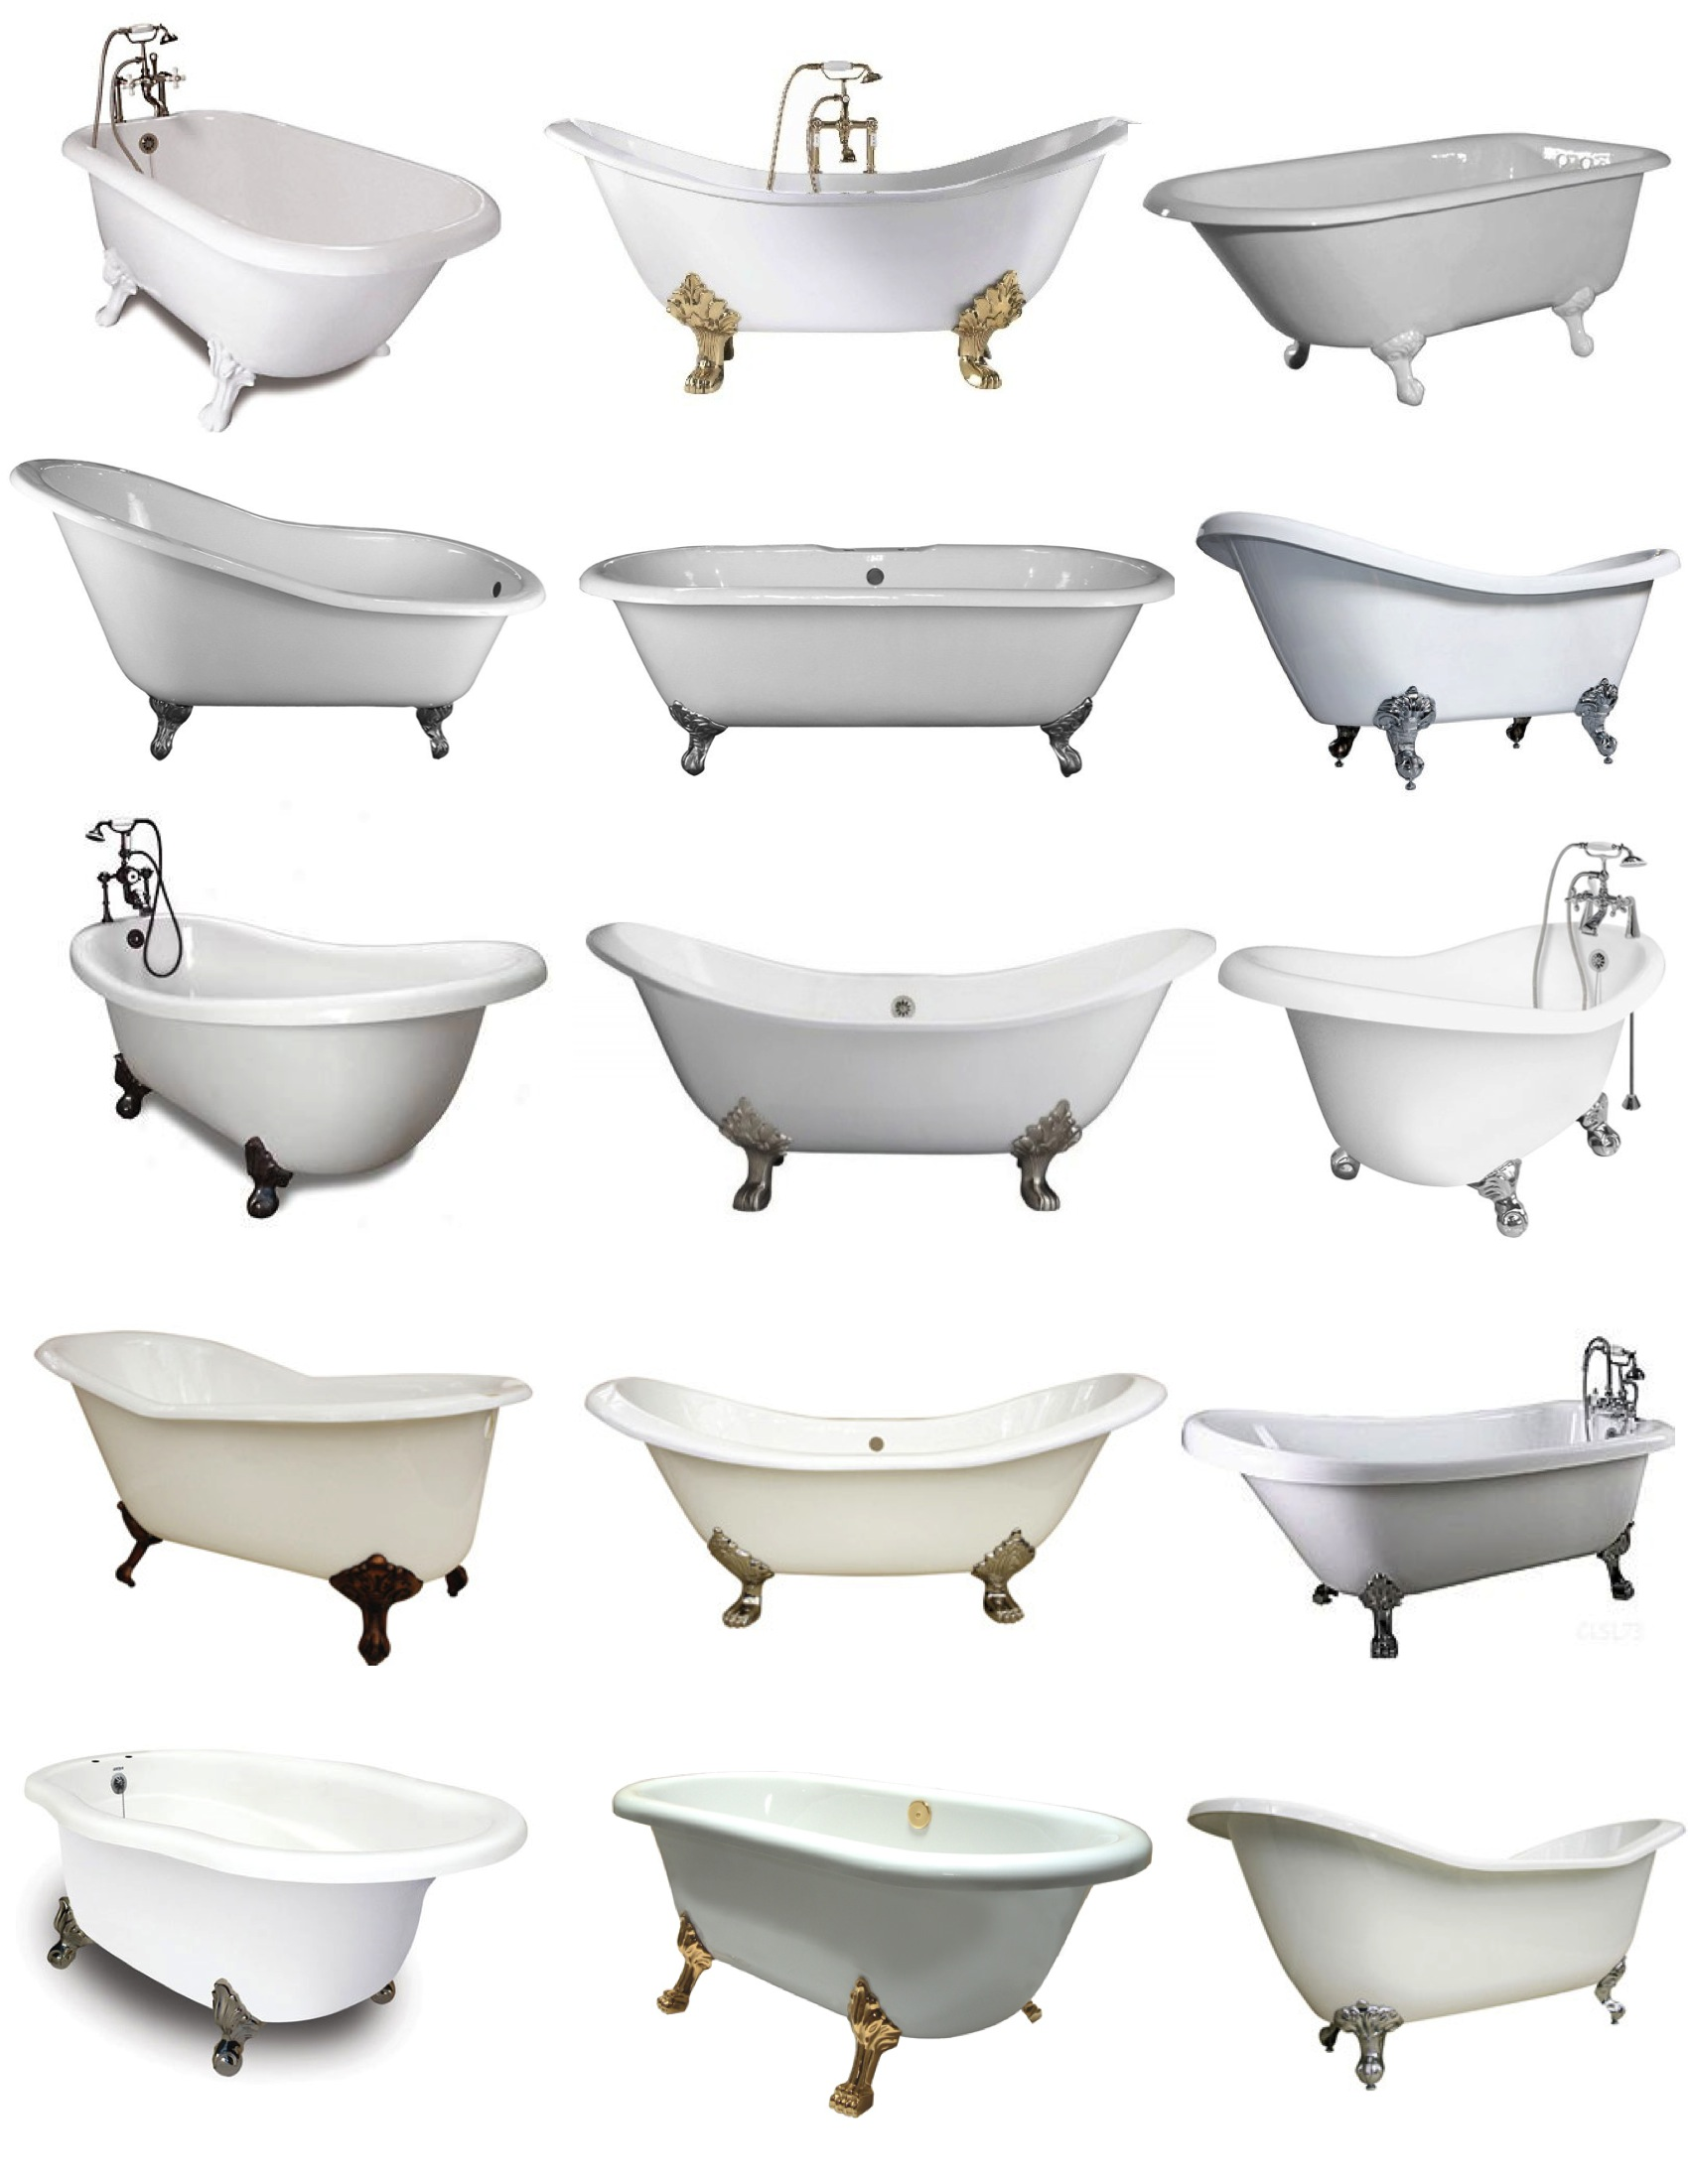 Options Of Interesting Clawfoot Tub For Bathroom Furniture Ideas